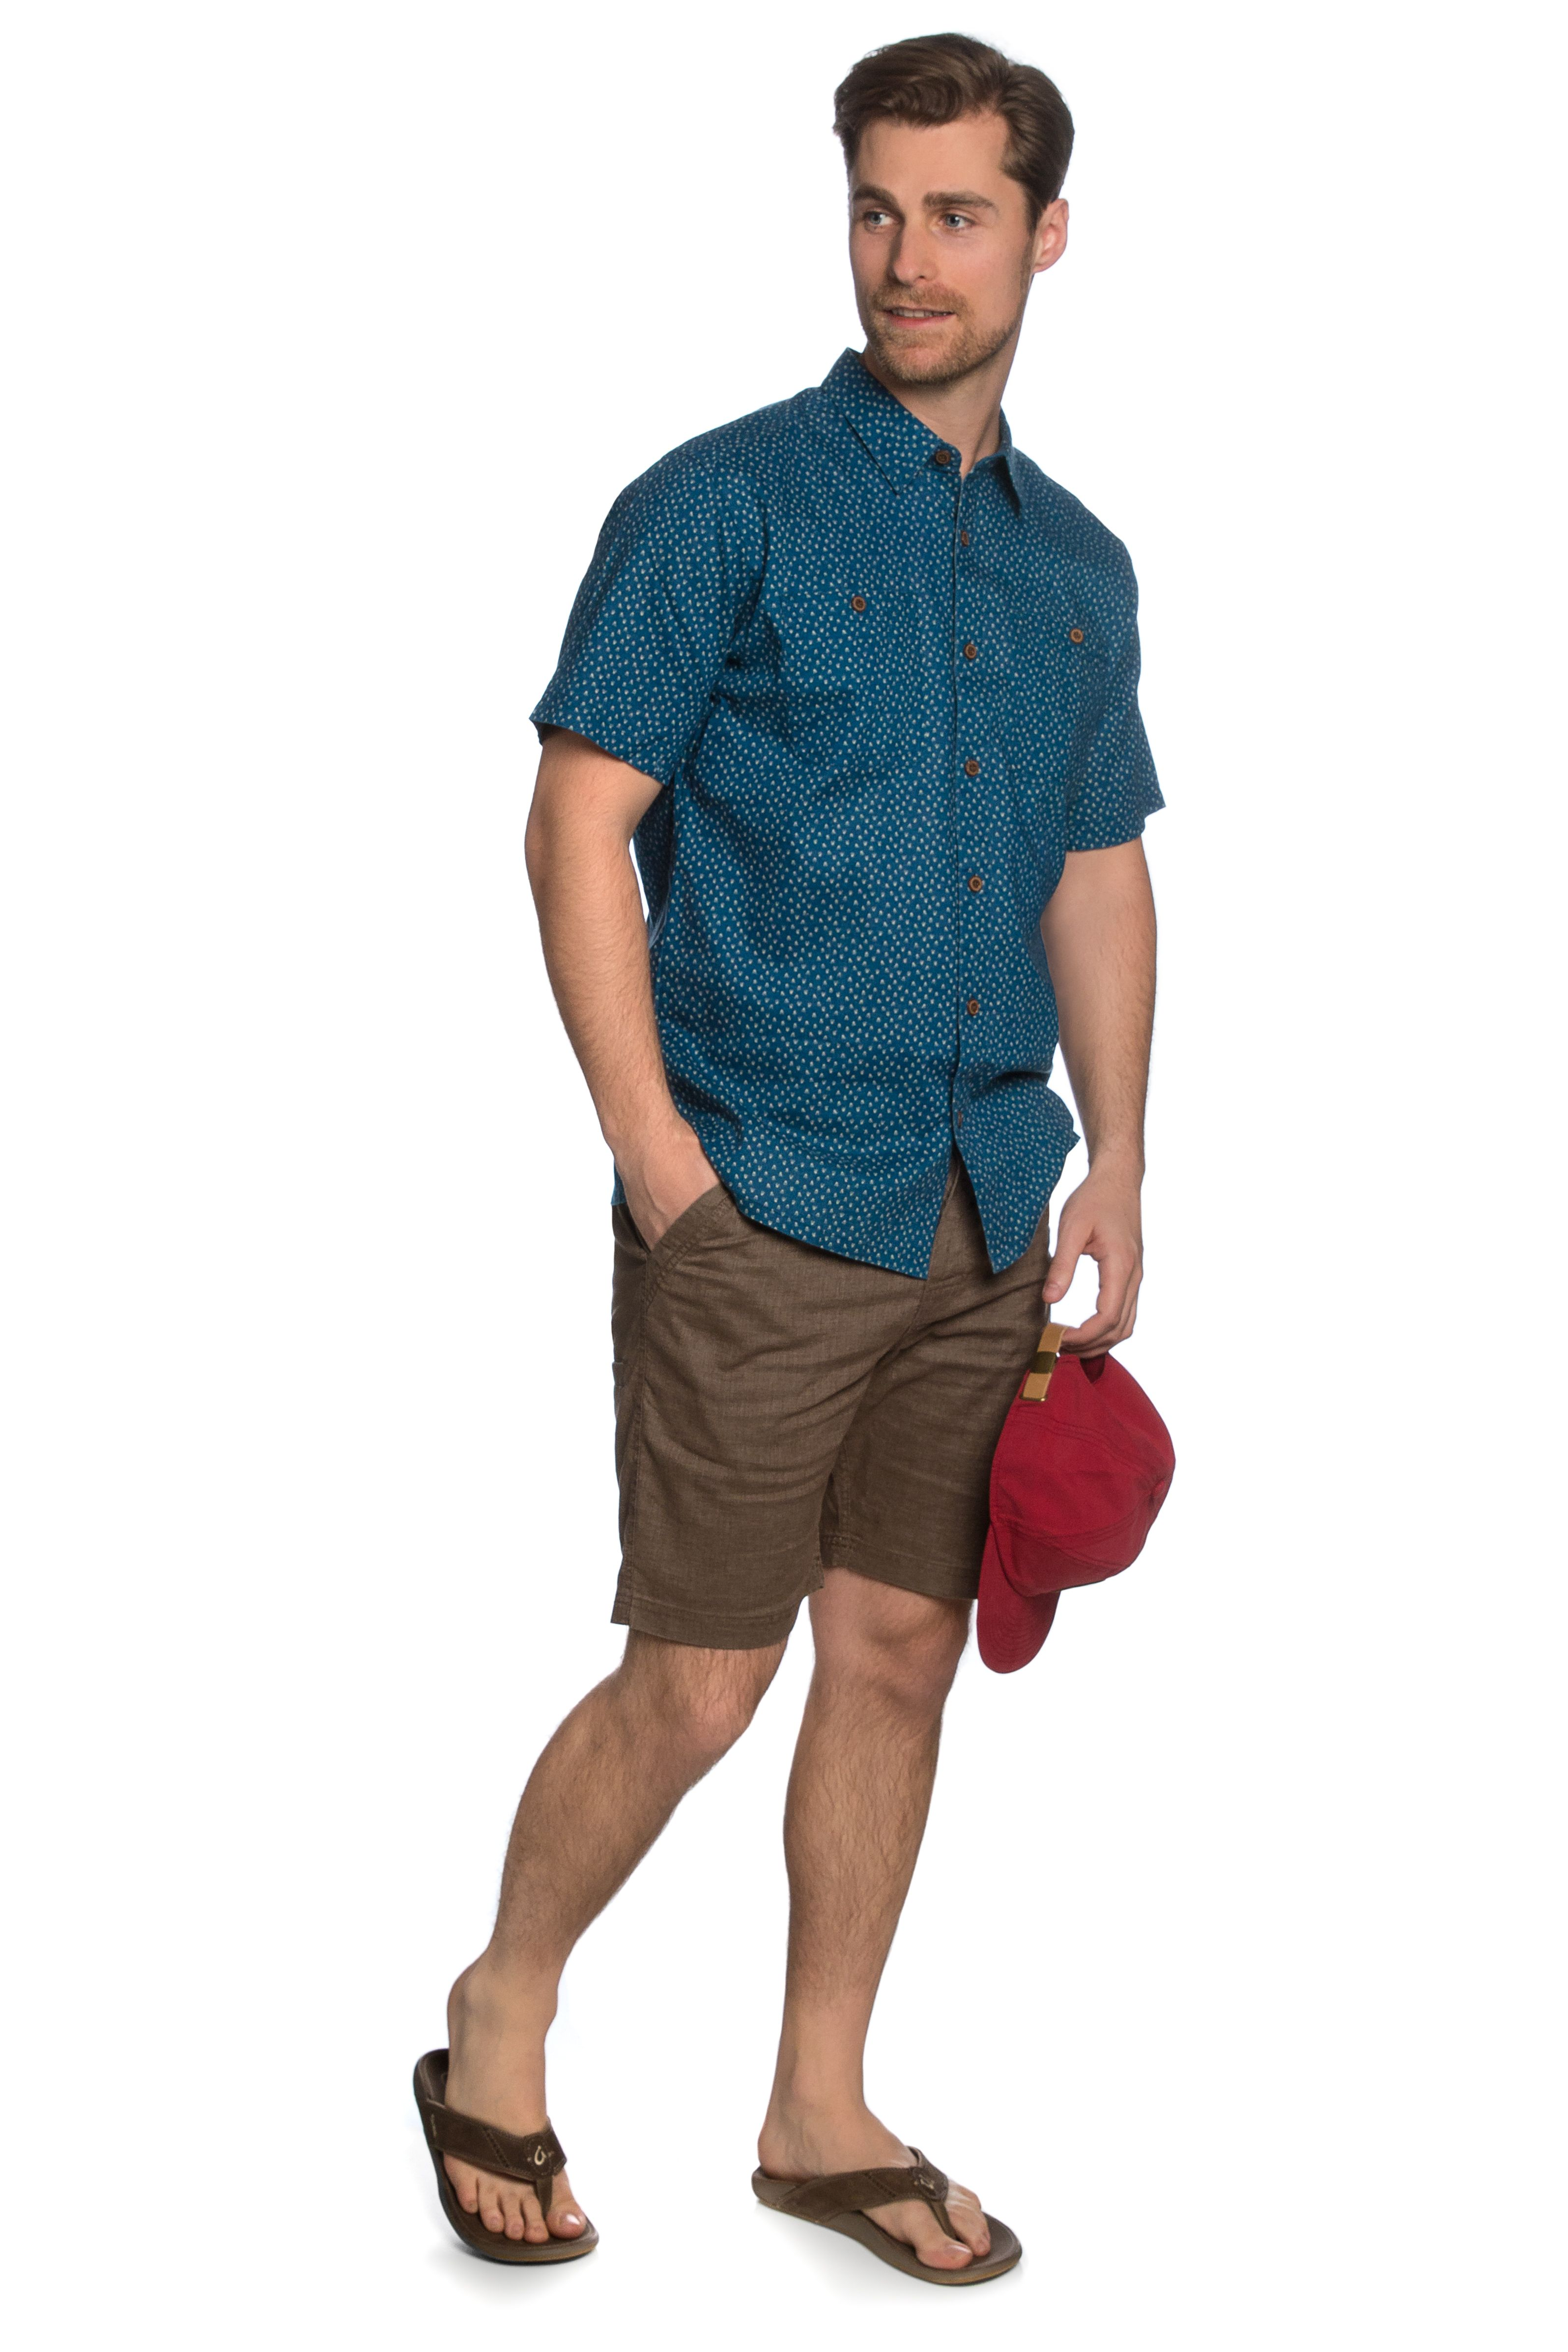 993645c199 Outfit made from Patagonia Back Step Mens Shirt